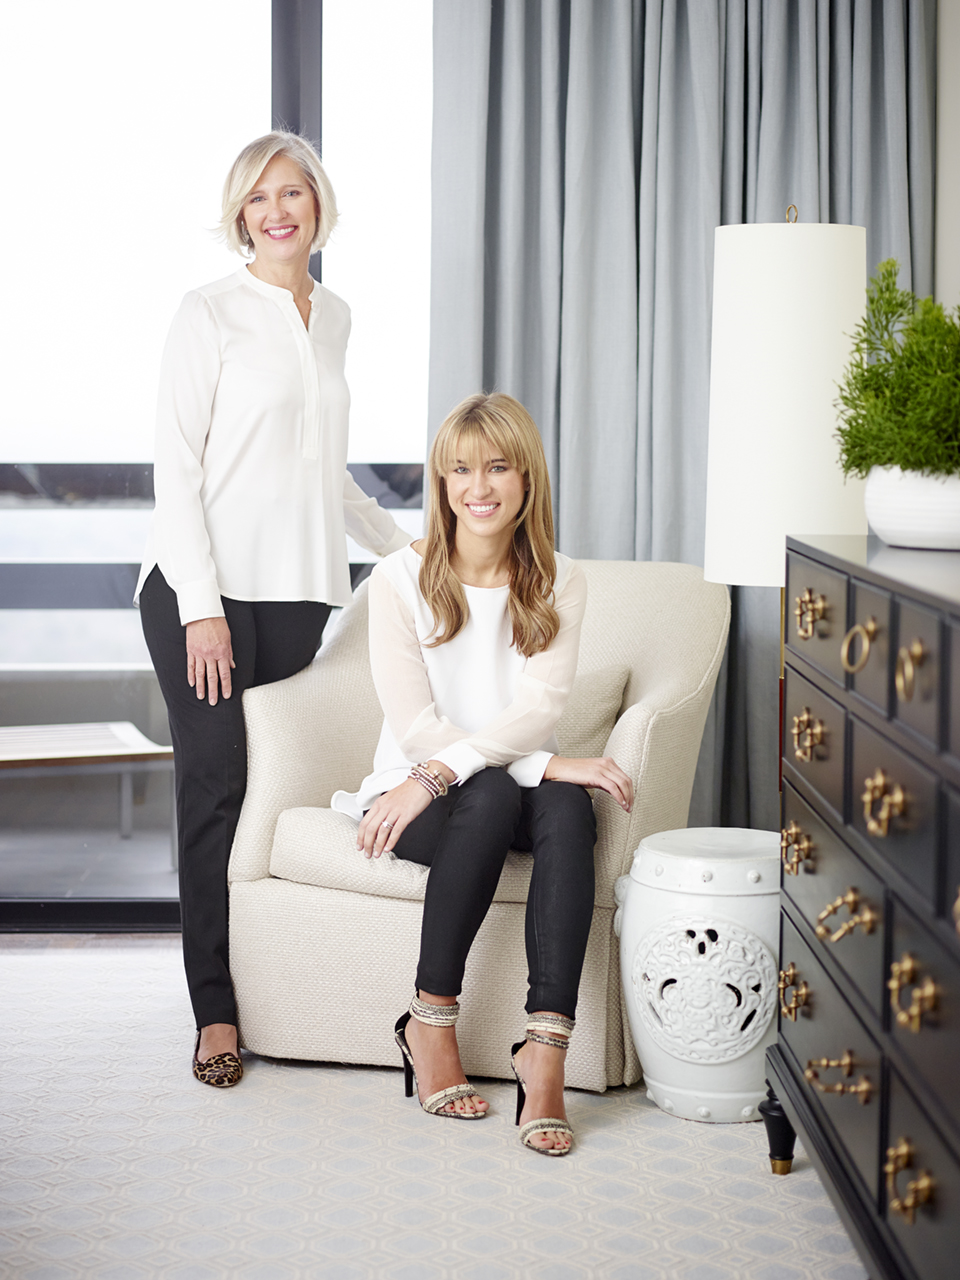 Margaret and Clary Bosbyshell of Margaux Interiors Ltd.